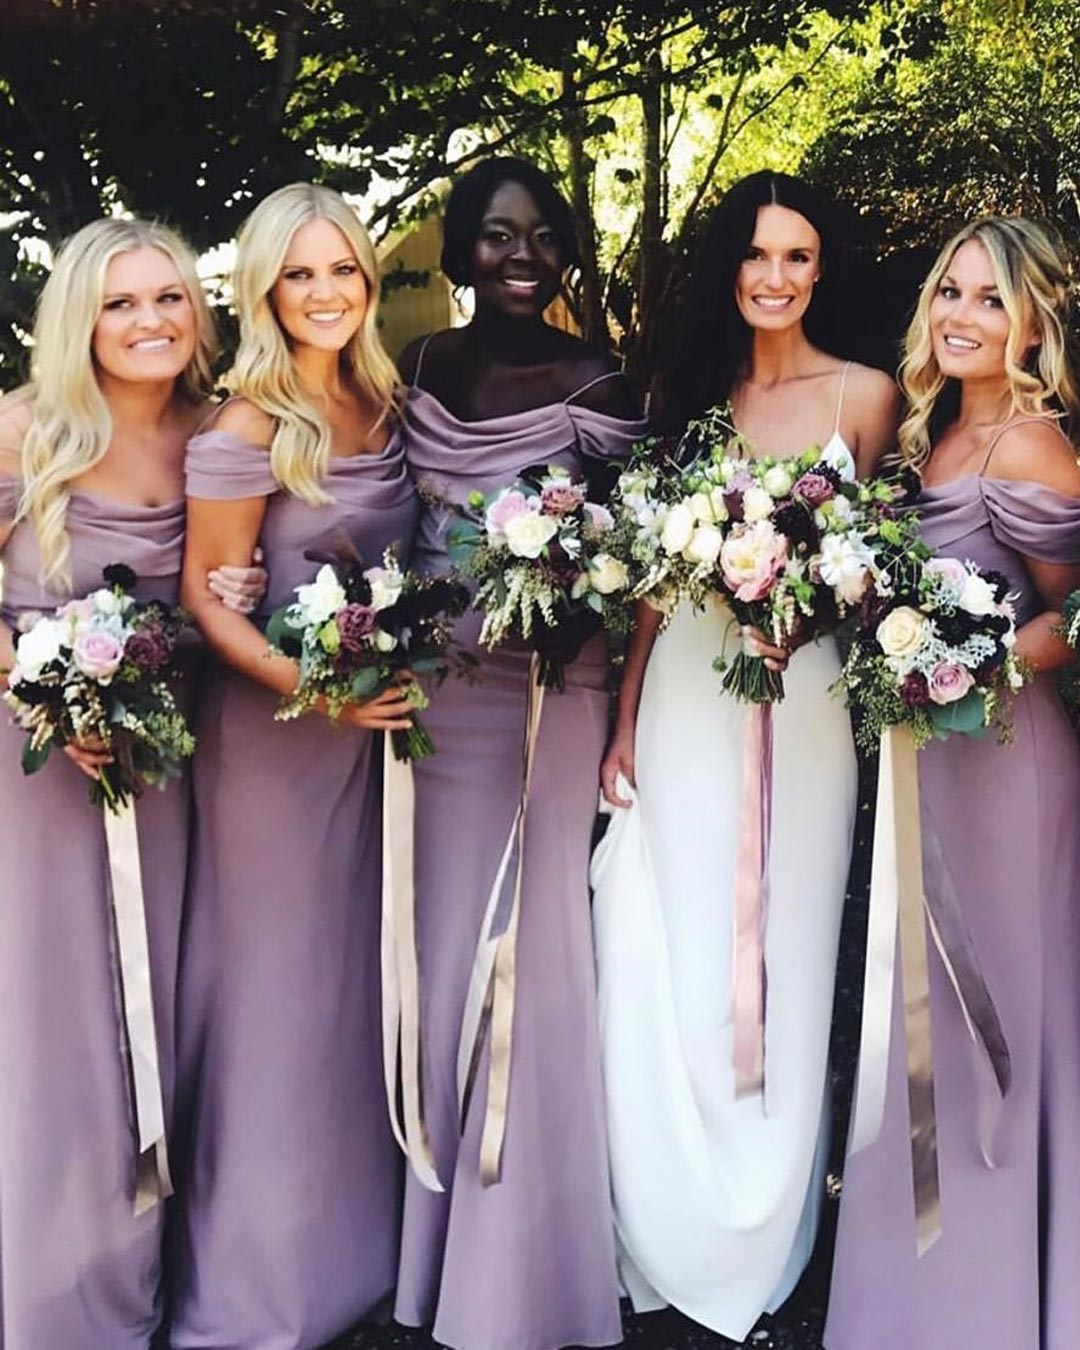 wedding colors purple lavender violet bridesmaids